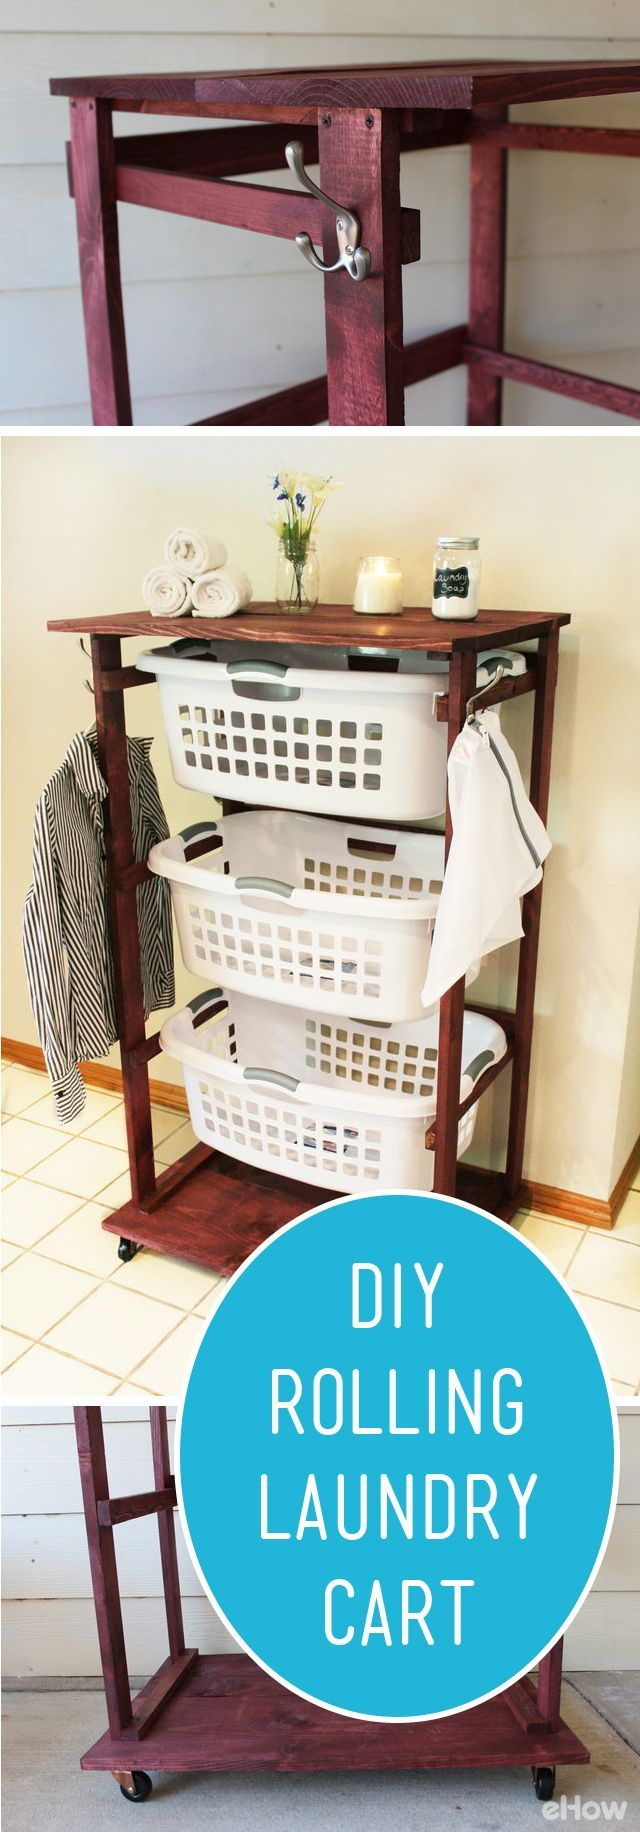 Diy Rolling Laundry Cart In 2018 For A Home Sweet Pinterest Cooling Pad Big Fan Votre Nb 050 14 Inch Allows You To Push Around Three Baskets At Once Cutting